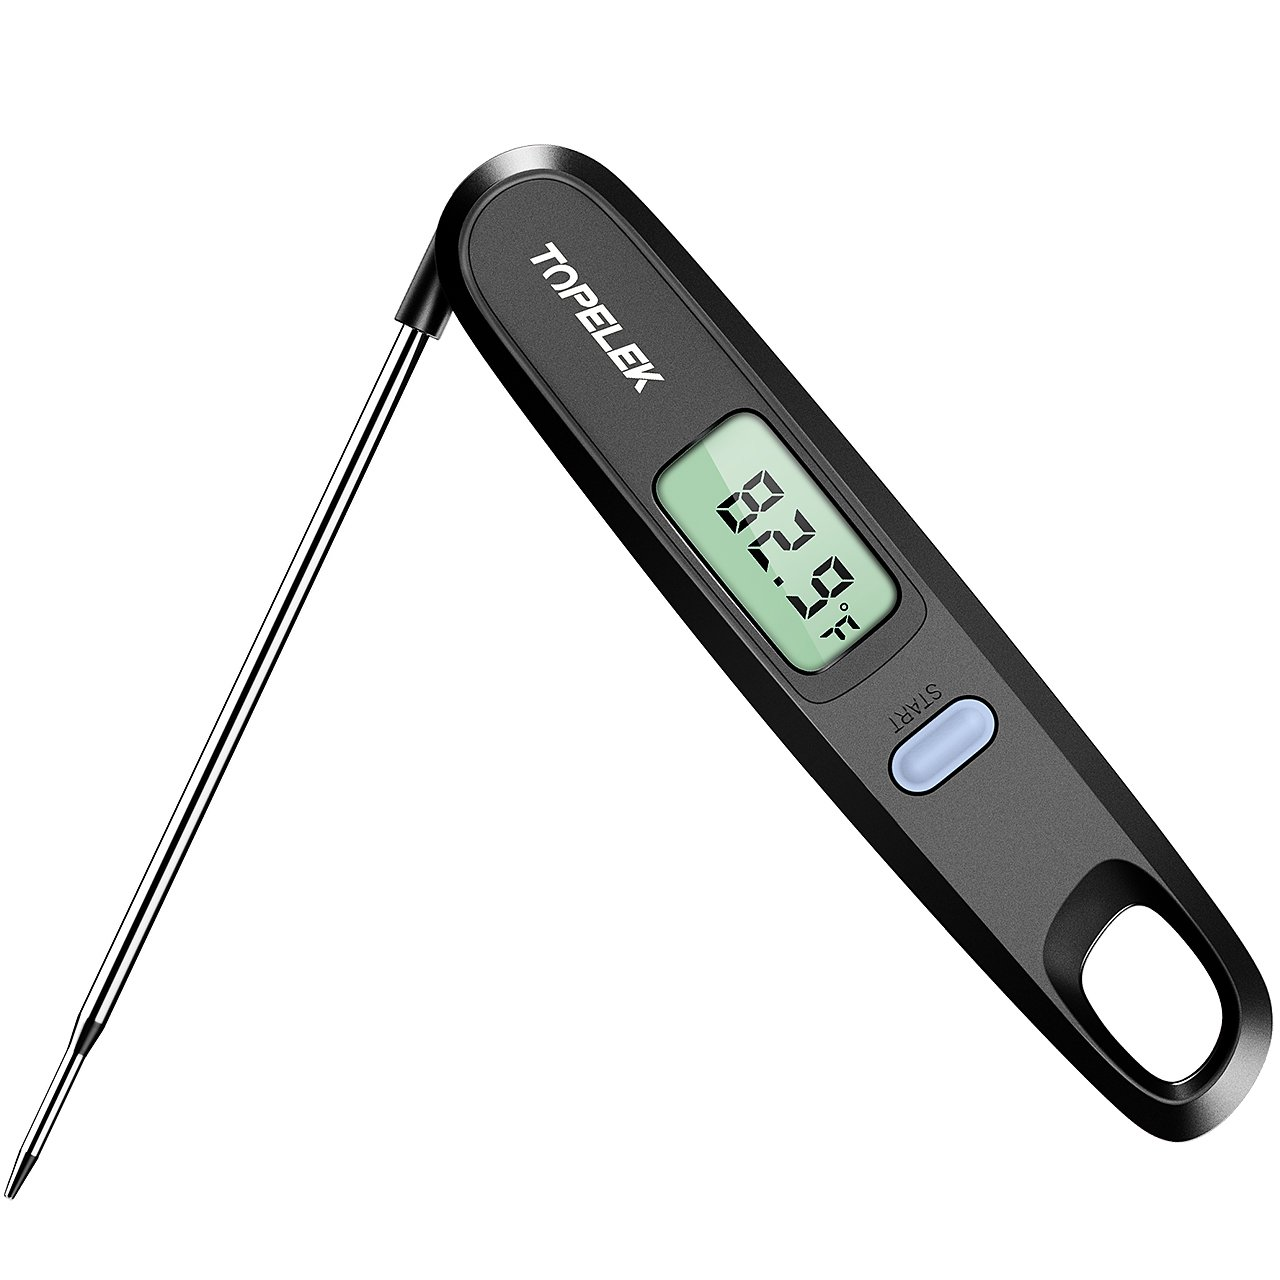 TOPELEK Digital Cooking Kitchen Thermometer Instant Read Sensor with Foldable Probe